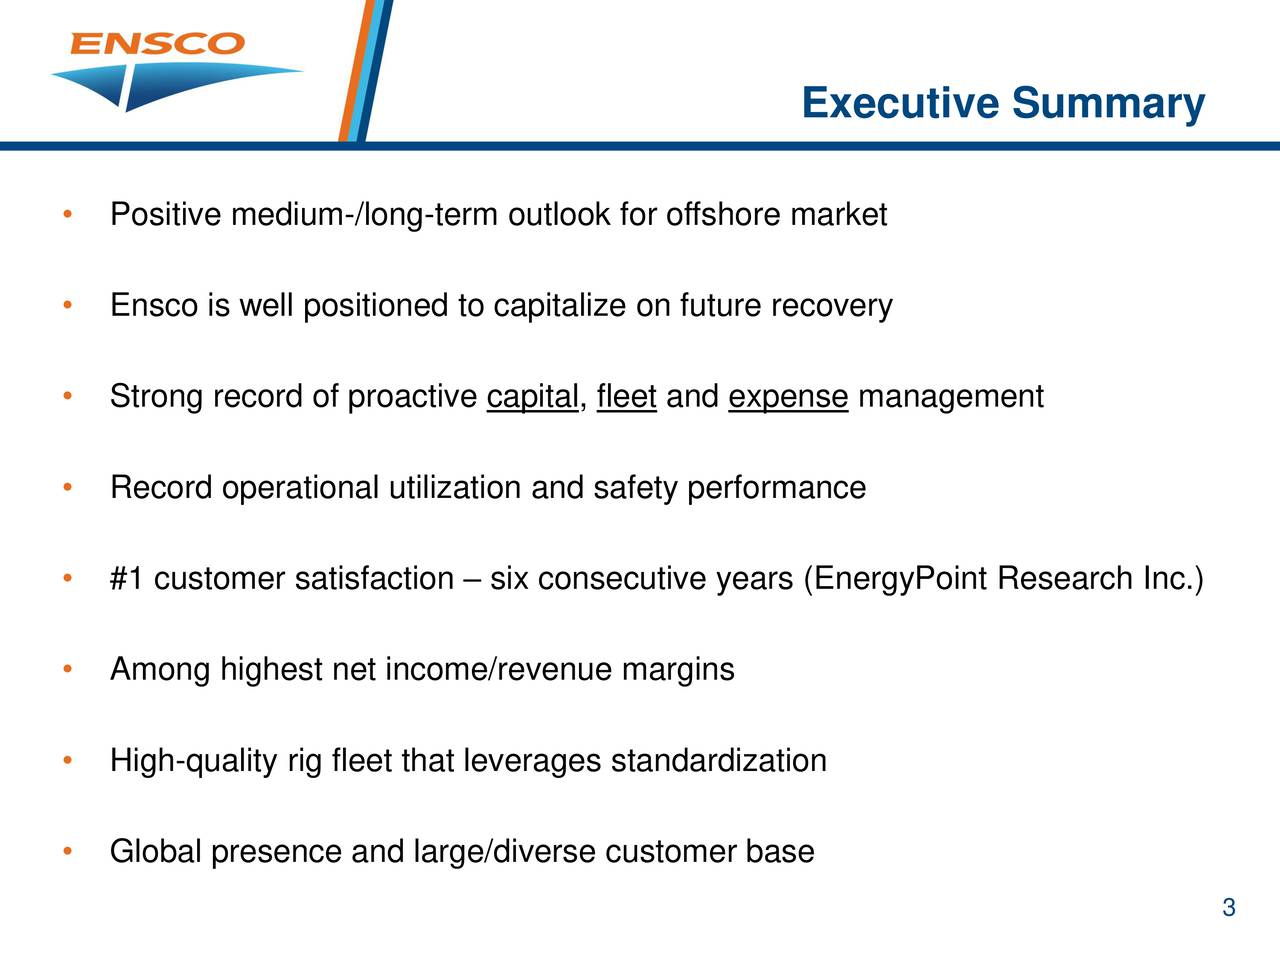 Positive medium-/long-term outlook for offshore market Ensco is well positioned to capitalize on future recovery Strong record of proactive capital, fleet and expense management Record operational utilization and safety performance #1 customer satisfaction  six consecutive years (EnergyPoint Research Inc.) Among highest net income/revenue margins High-quality rig fleet that leverages standardization Global presence and large/diverse customer base 3